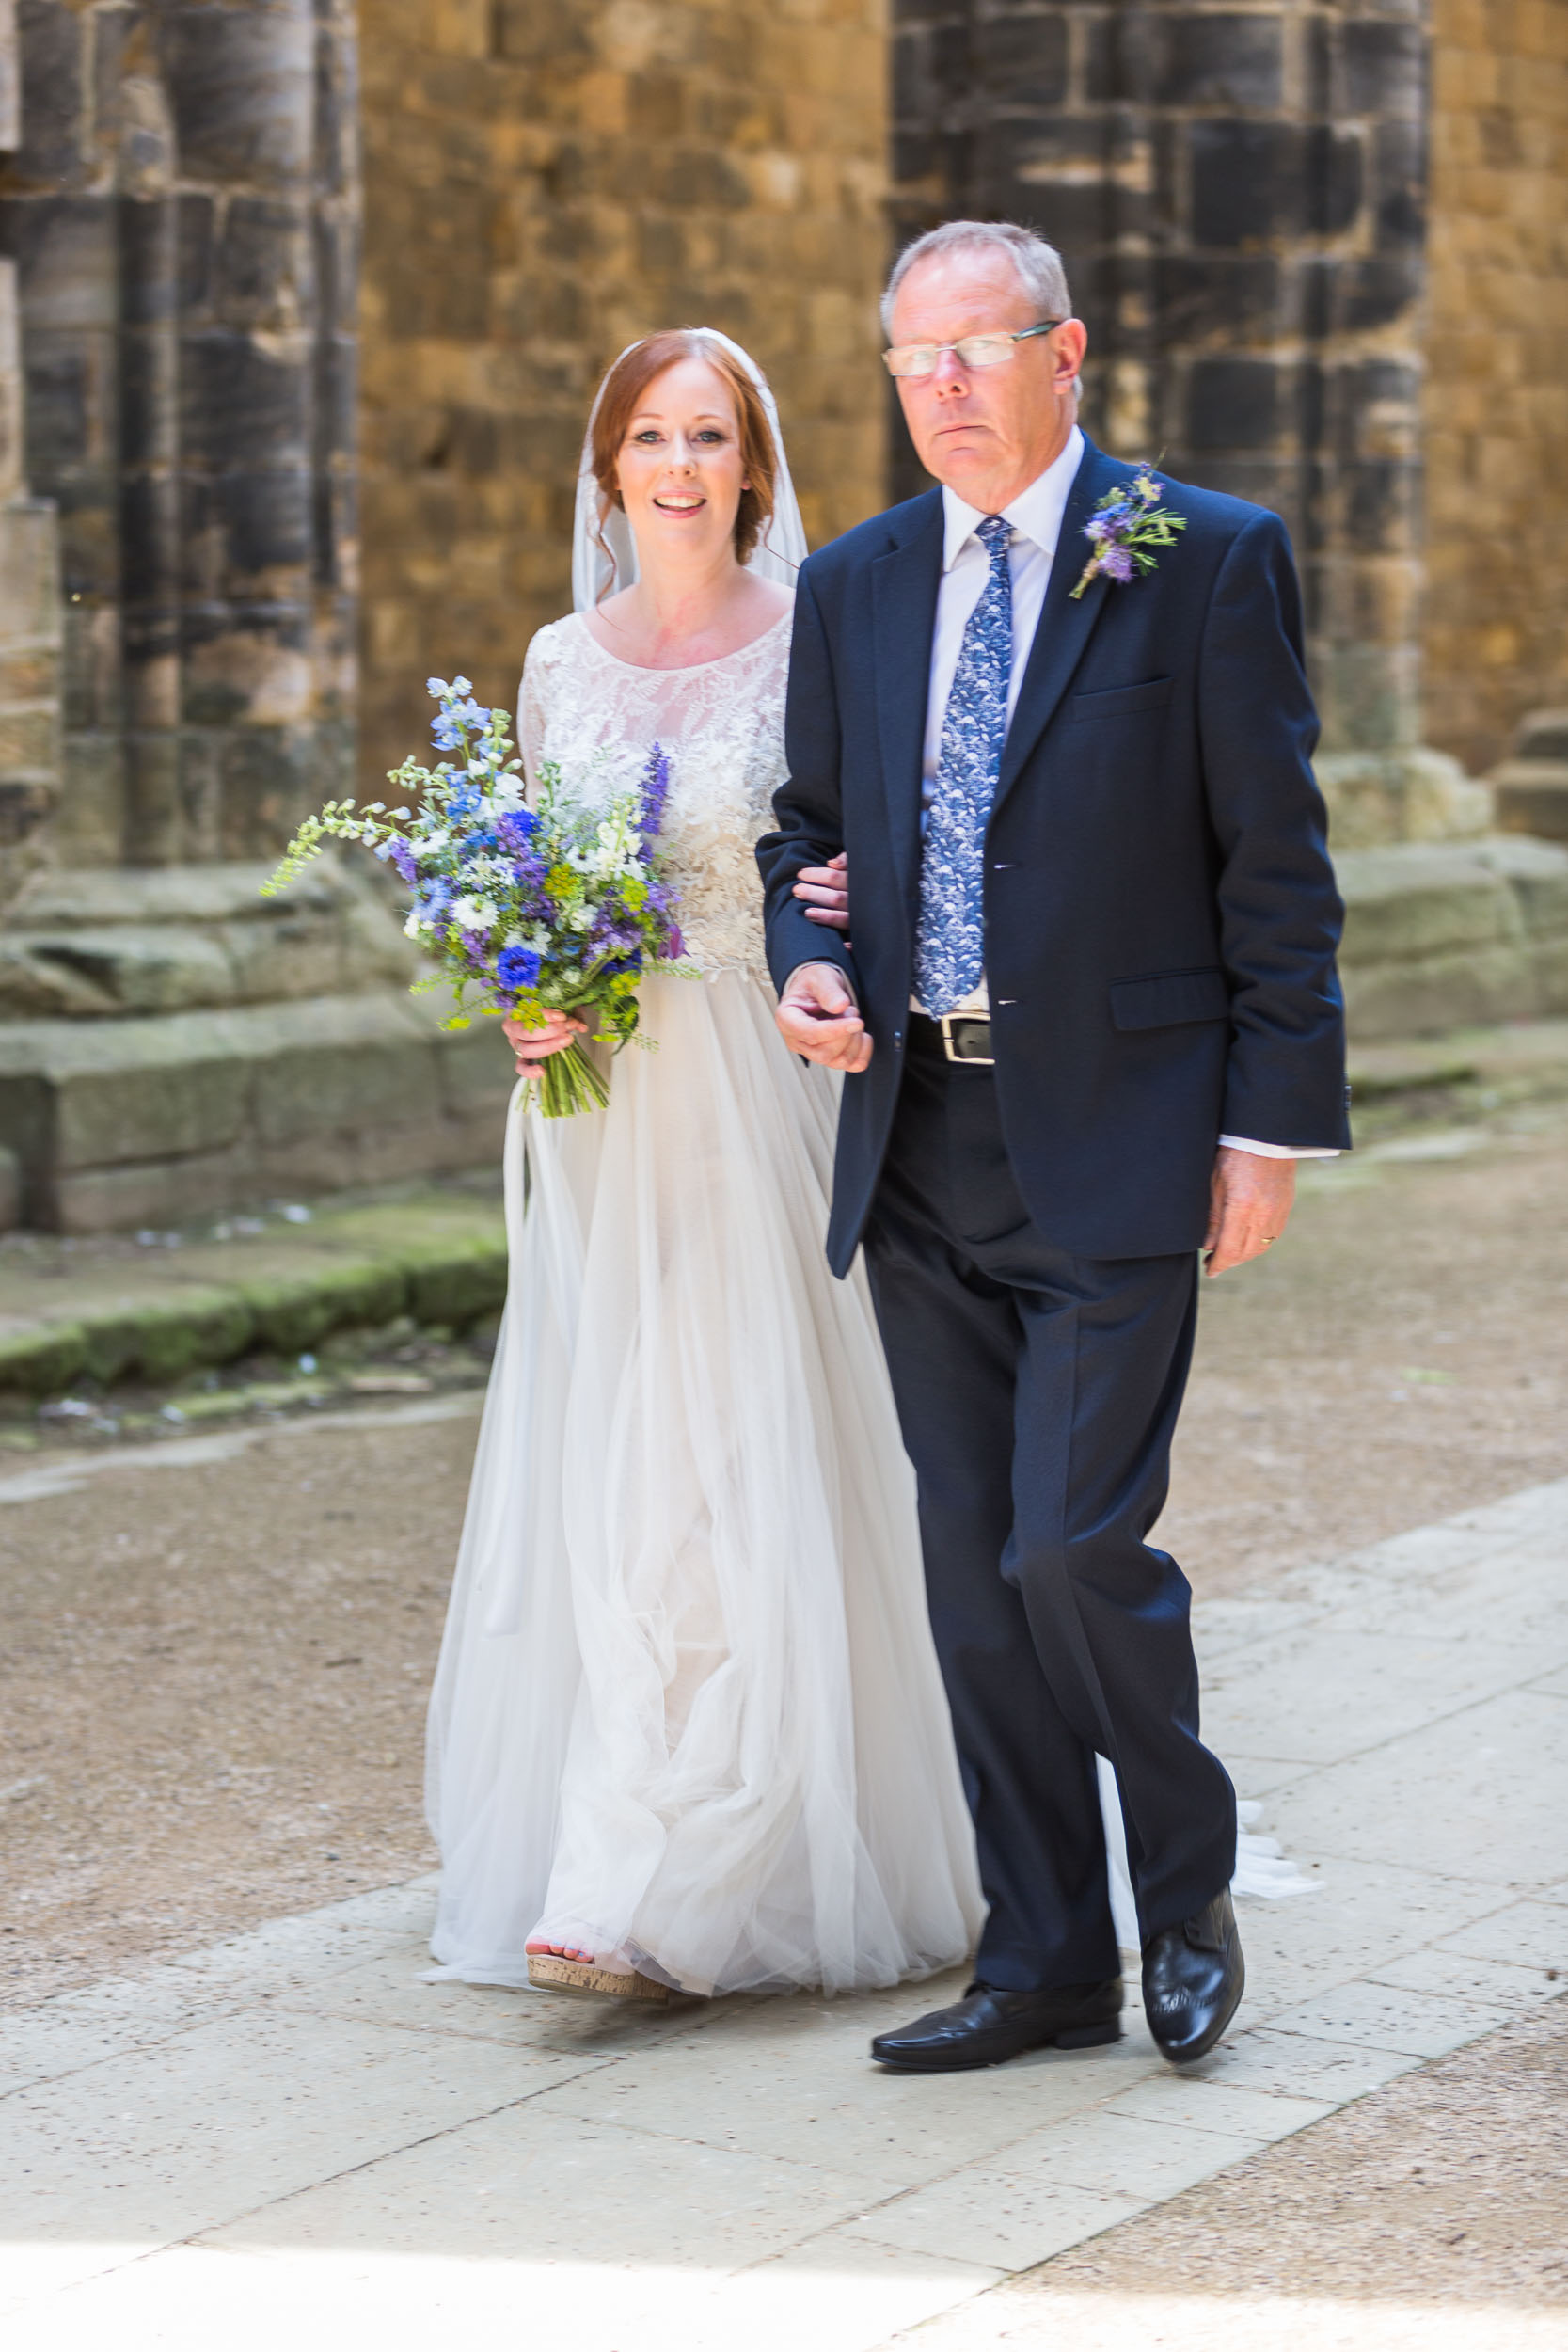 Amy & Oliver-Wedding Part II-Kirkstall Abbey-Leeds-photo-0156.jpg